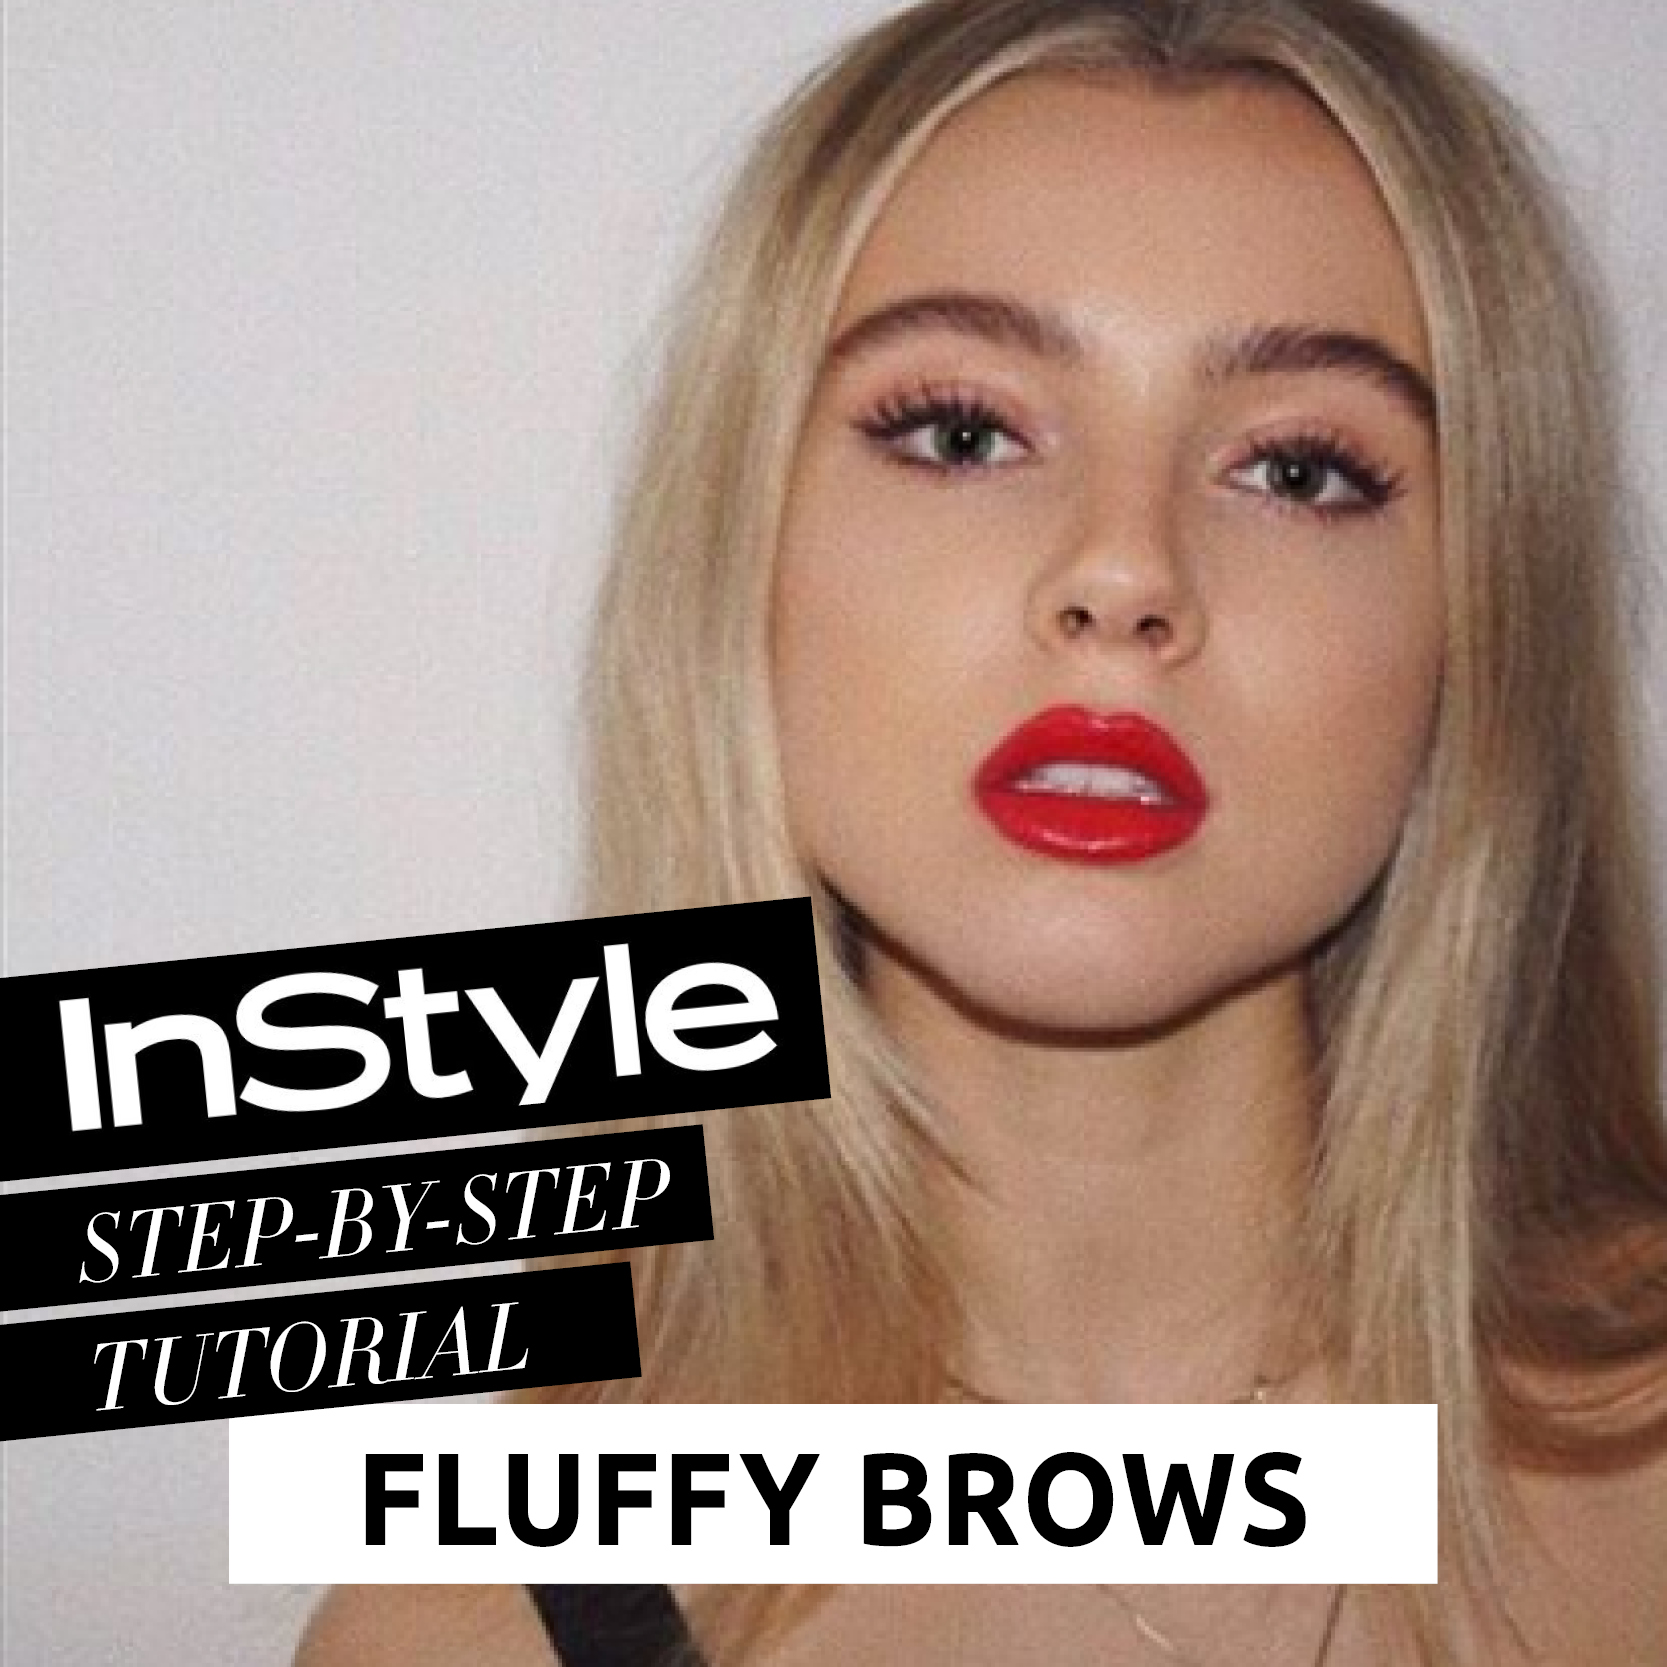 InStyle, Backstage & die Brow Butter